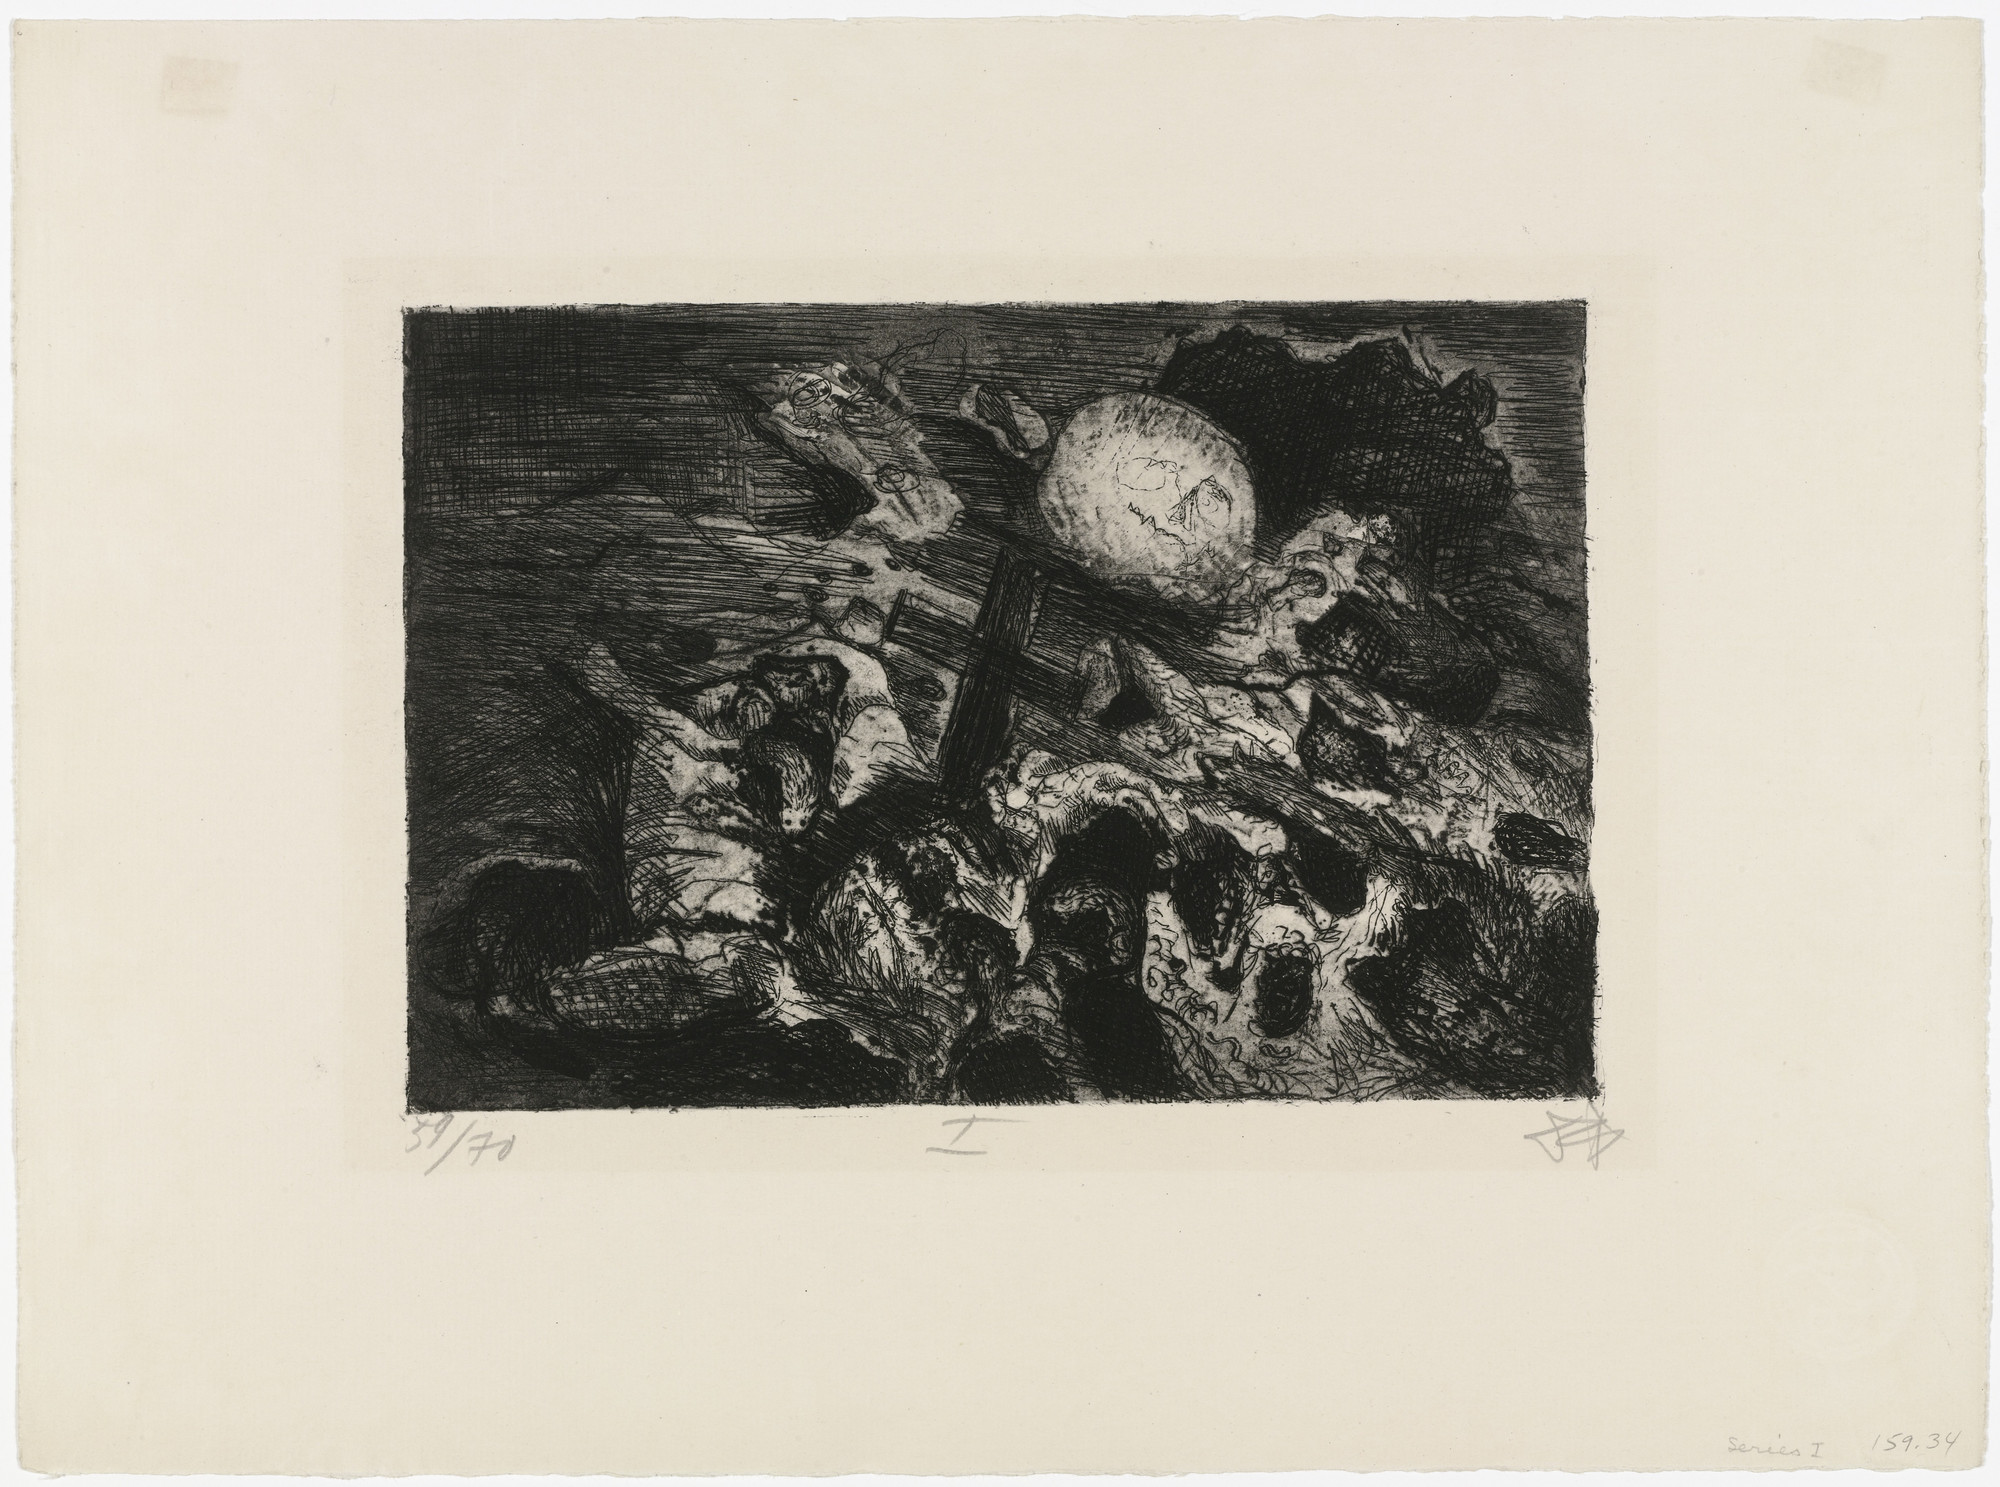 Otto Dix. Soldiers' Grave Between the Lines (Soldatengrab zwischen den Linien) from The War (Der Krieg). (1924)